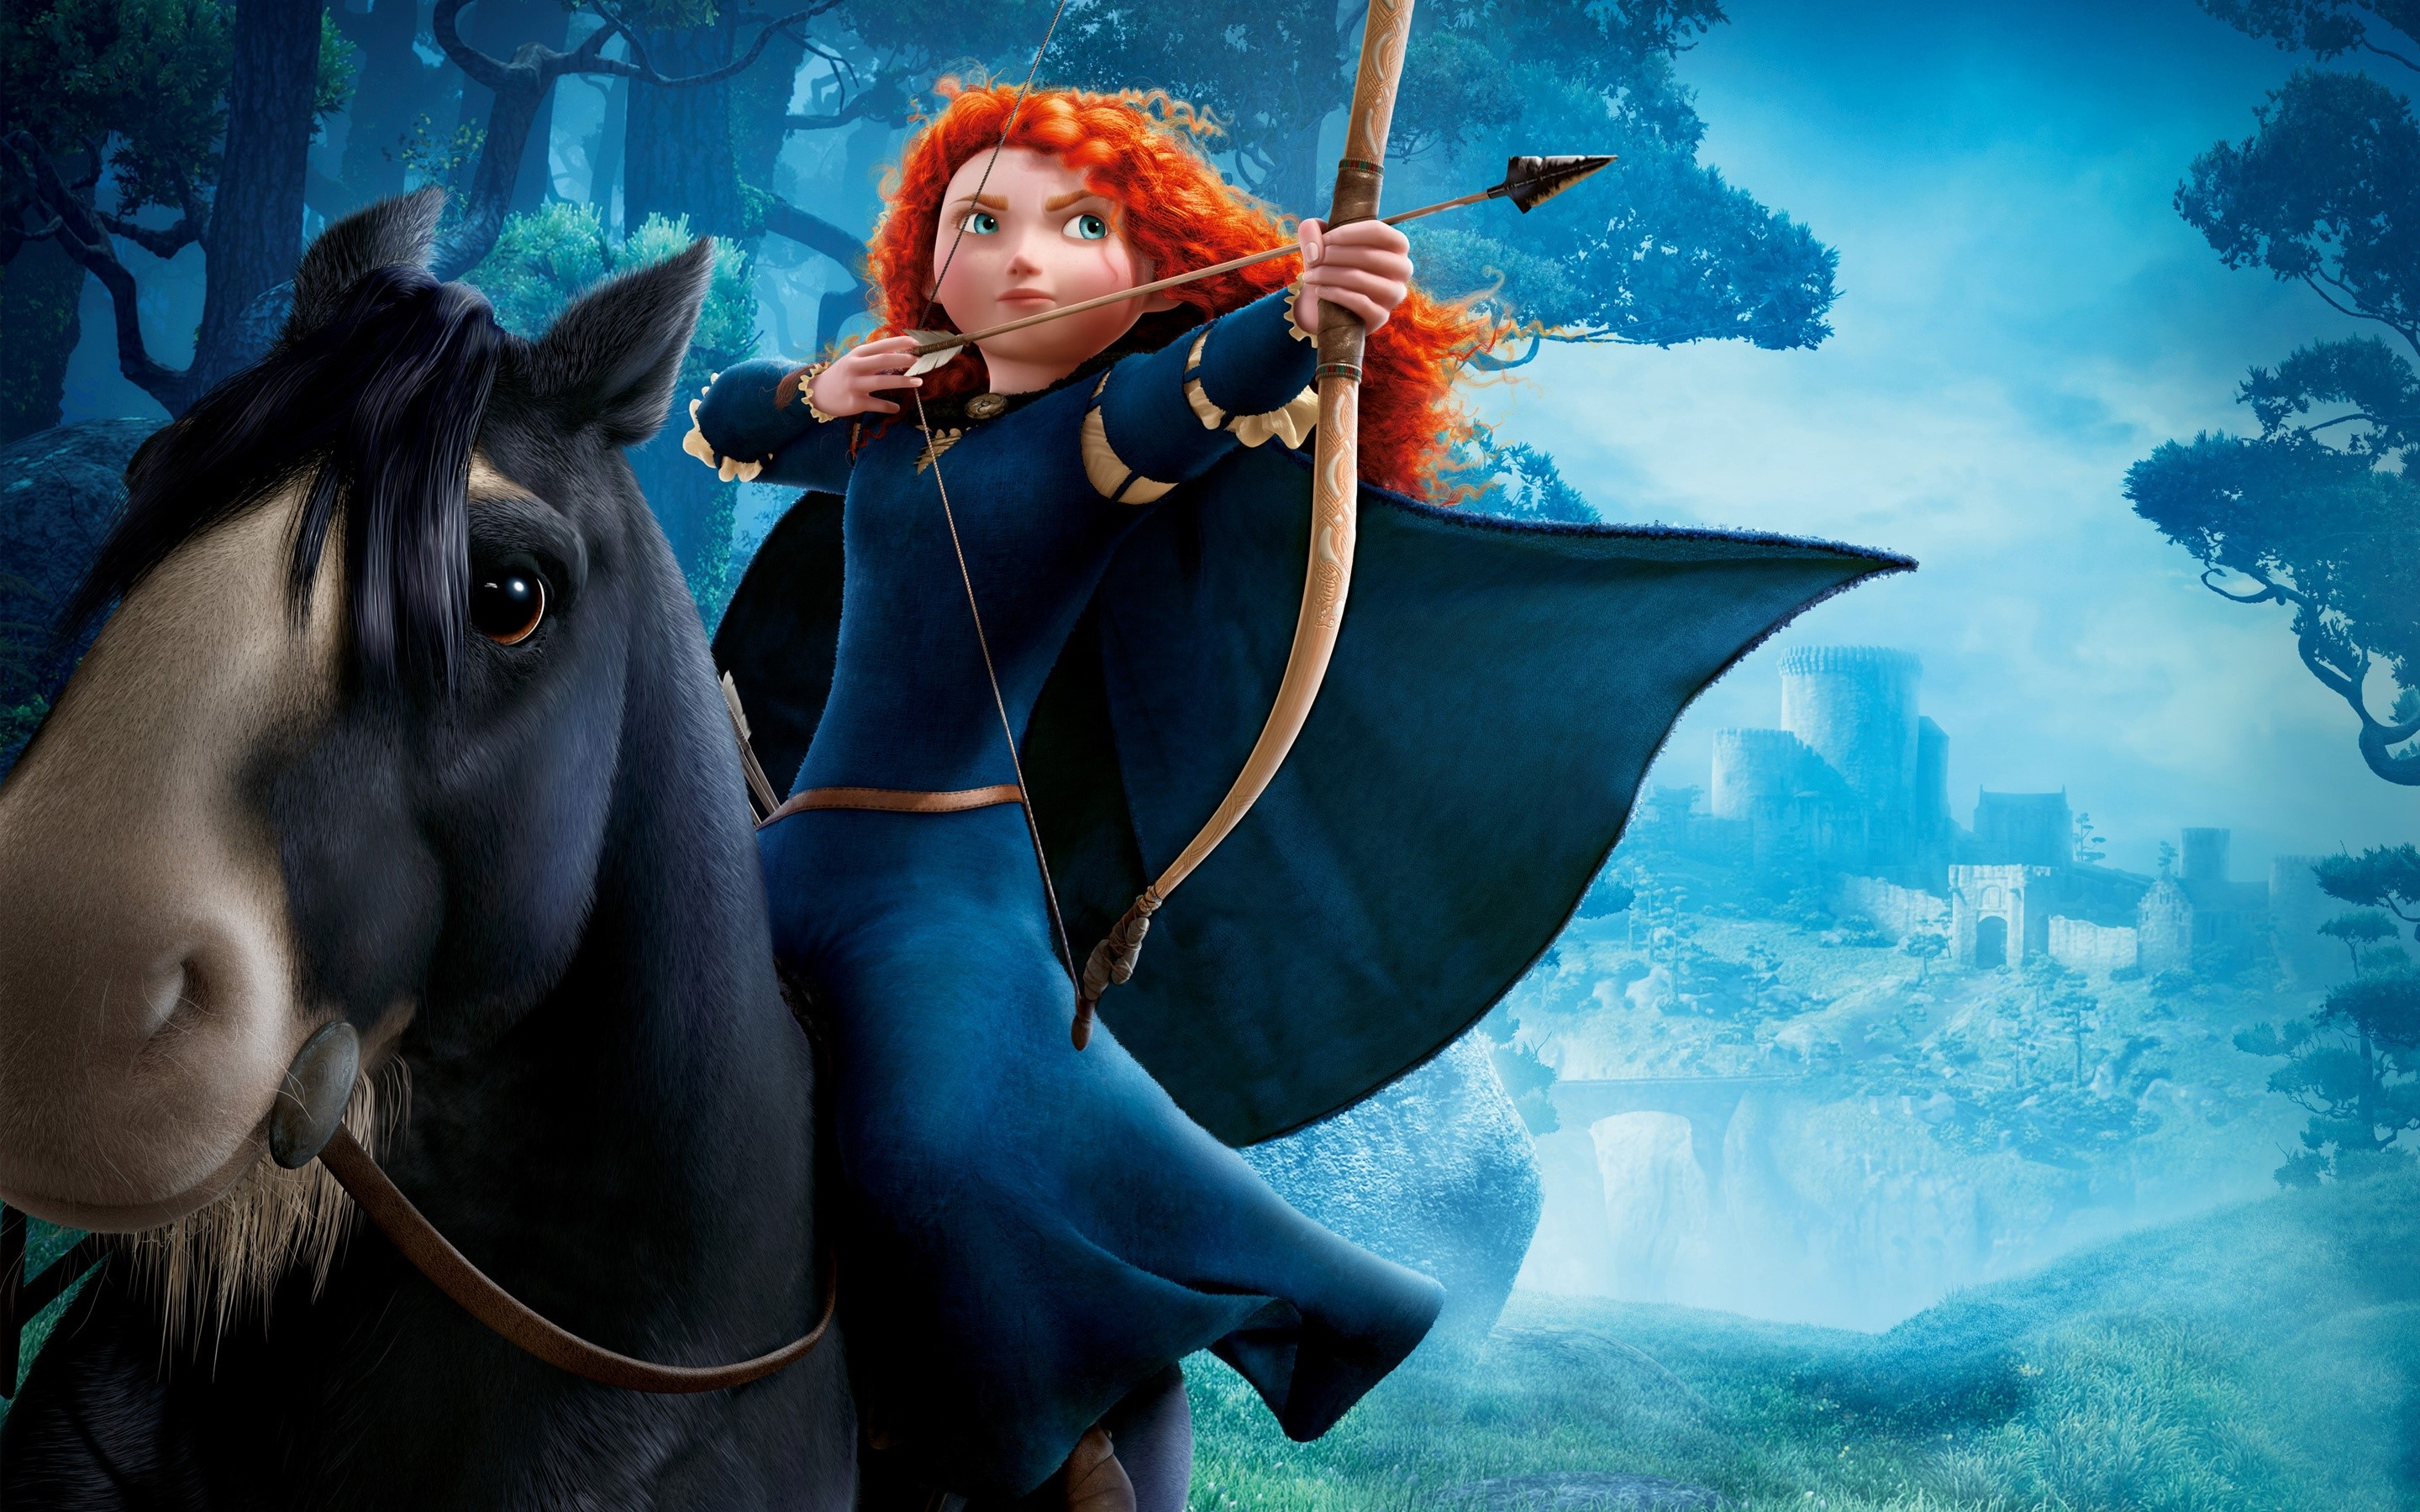 Wallpaper Princess Merida